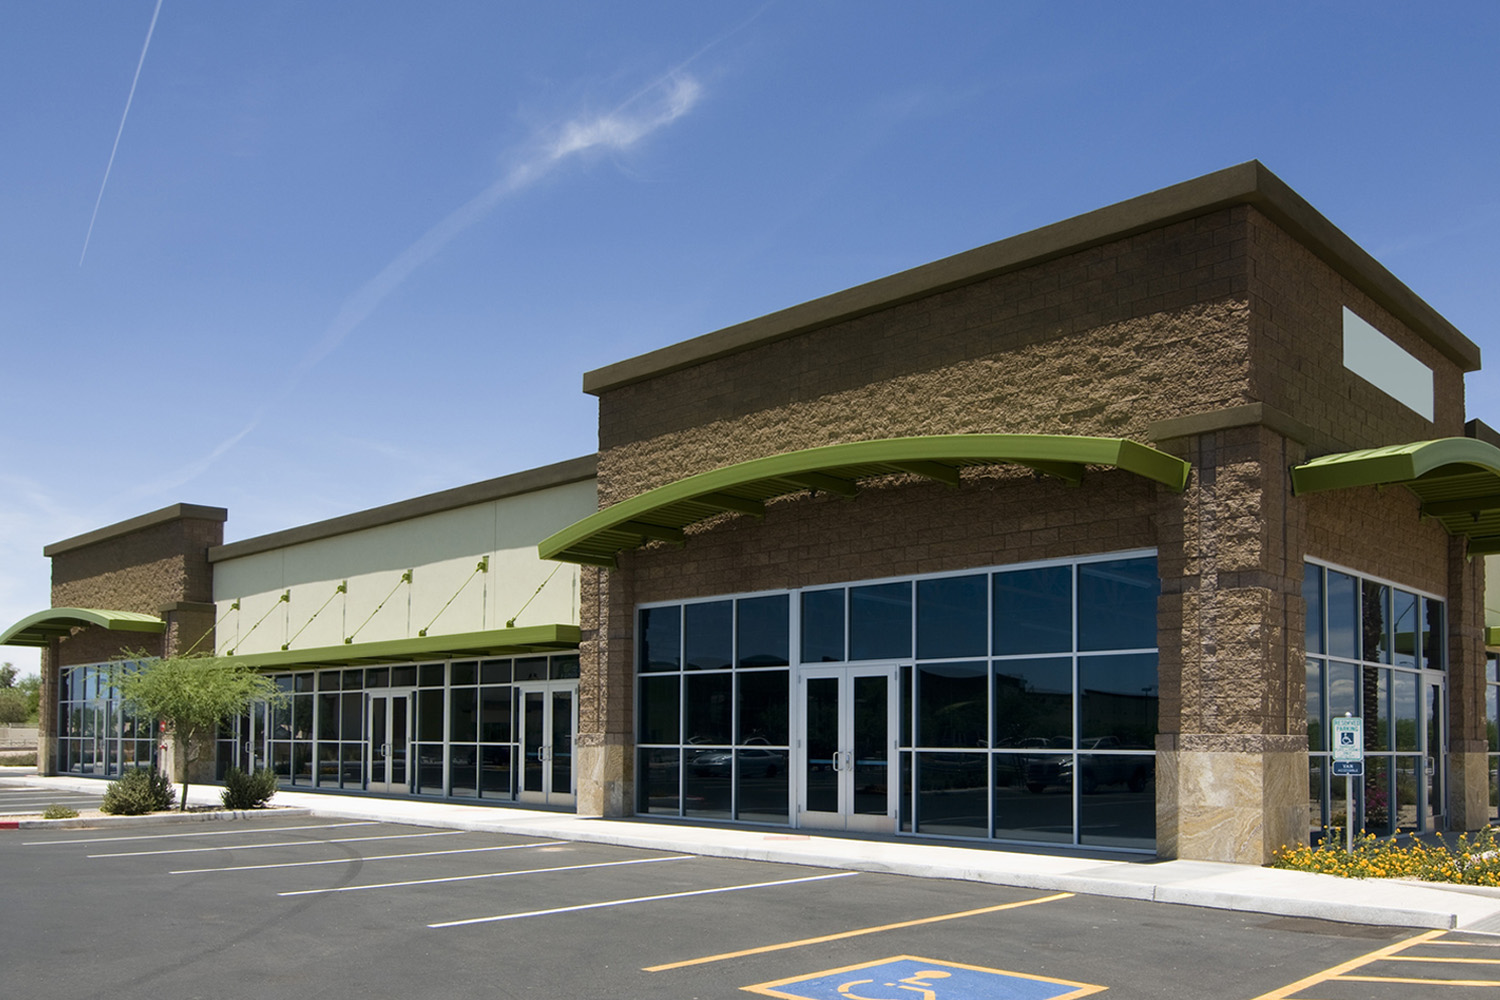 12 commercial retail buildings design images small for Small building design ideas